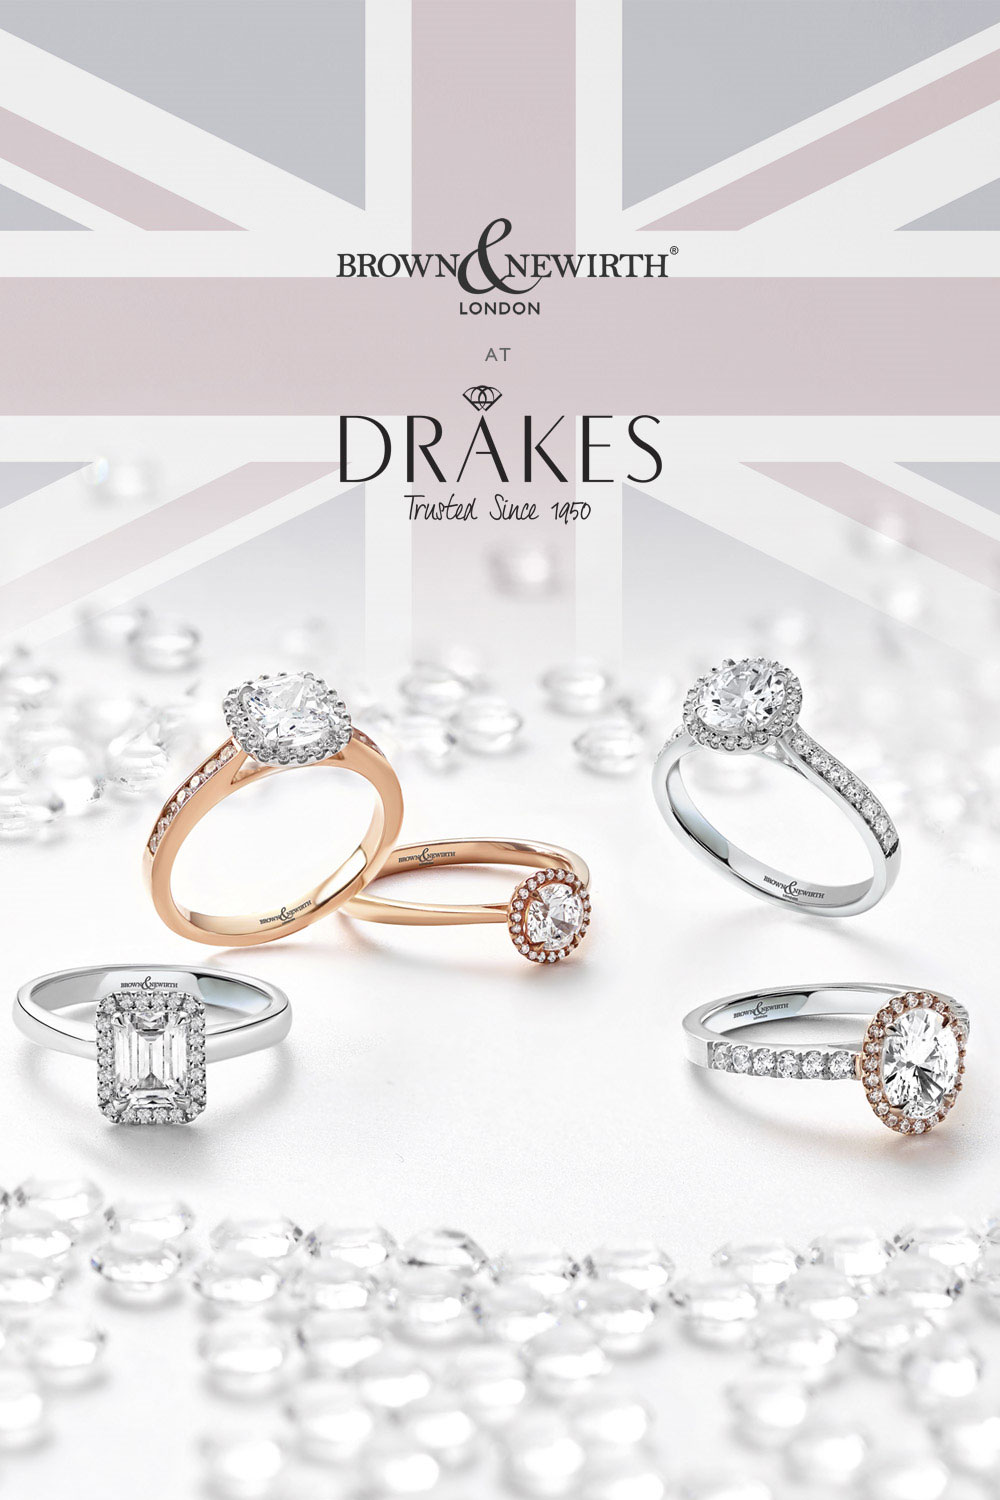 Brown and Newirth Engagement Rings, Love, Engagement, Engagement Rings, B&N, Drakes Jewellers Plymouth